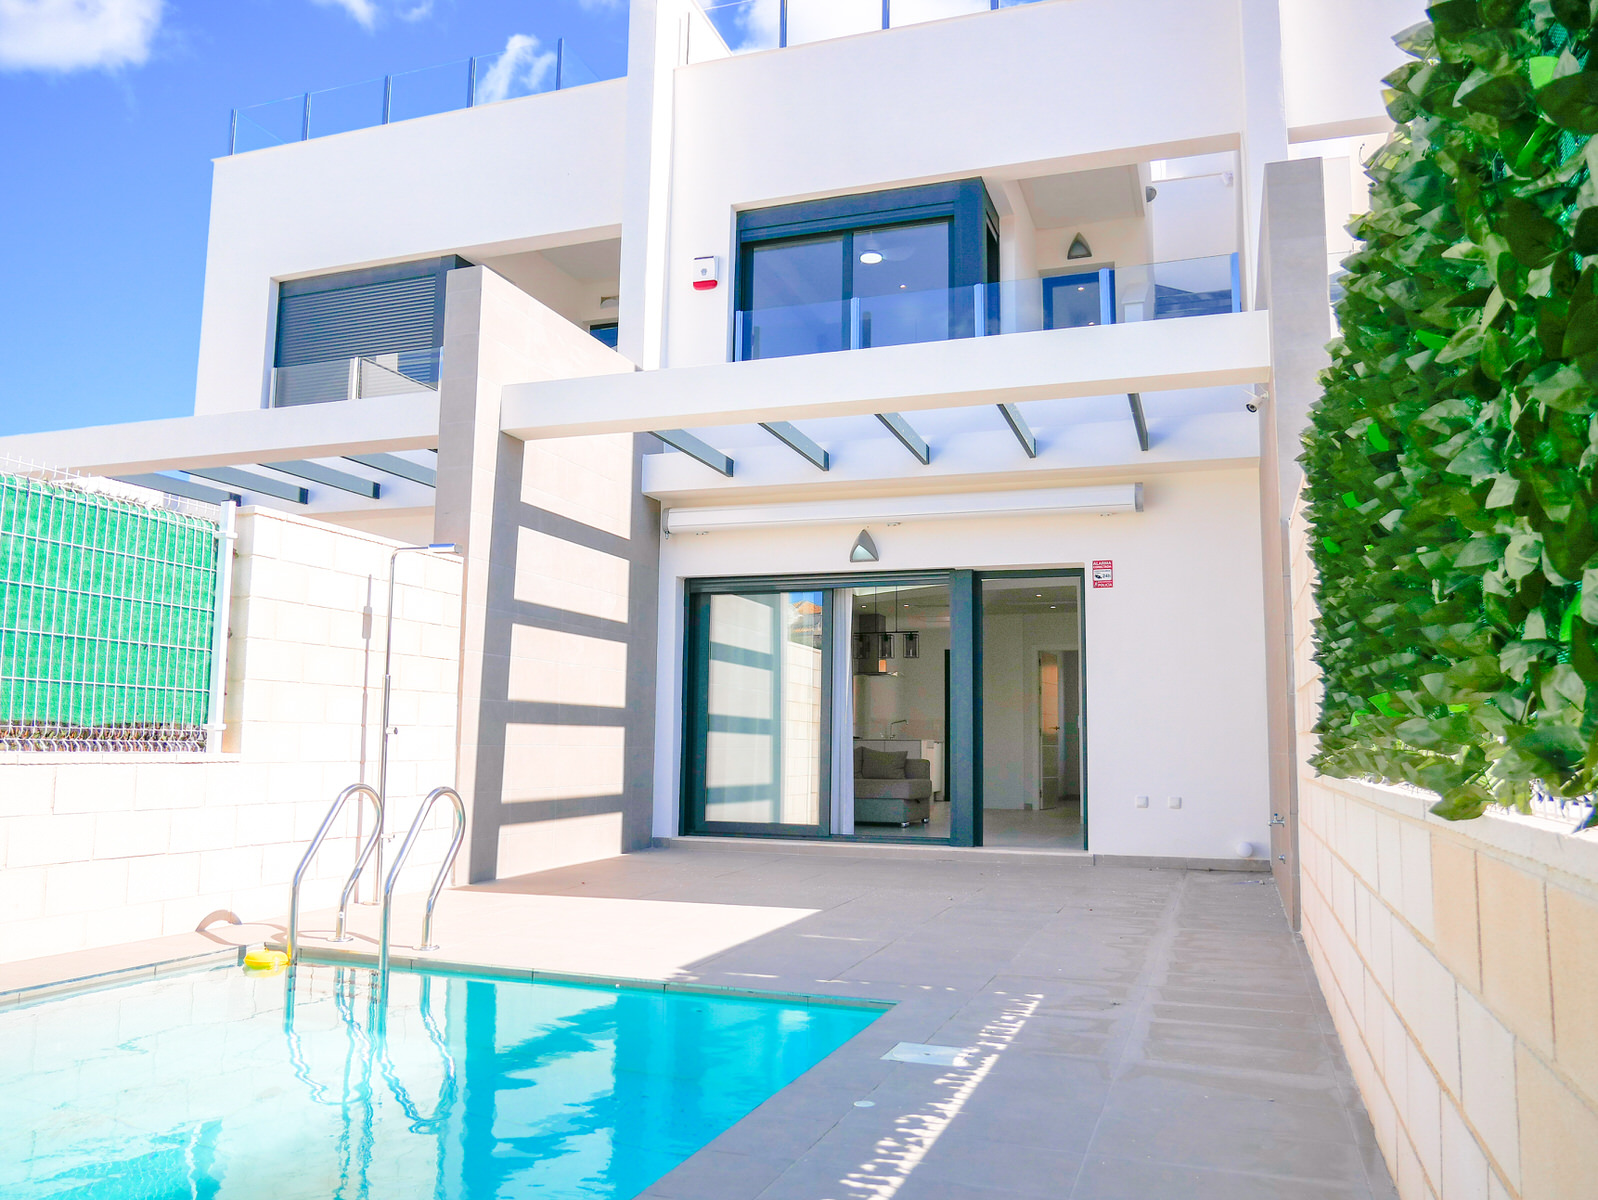 As good as new amazing townhouse for sale in a well located new residential area of Villamartin, Orihuela Costa.